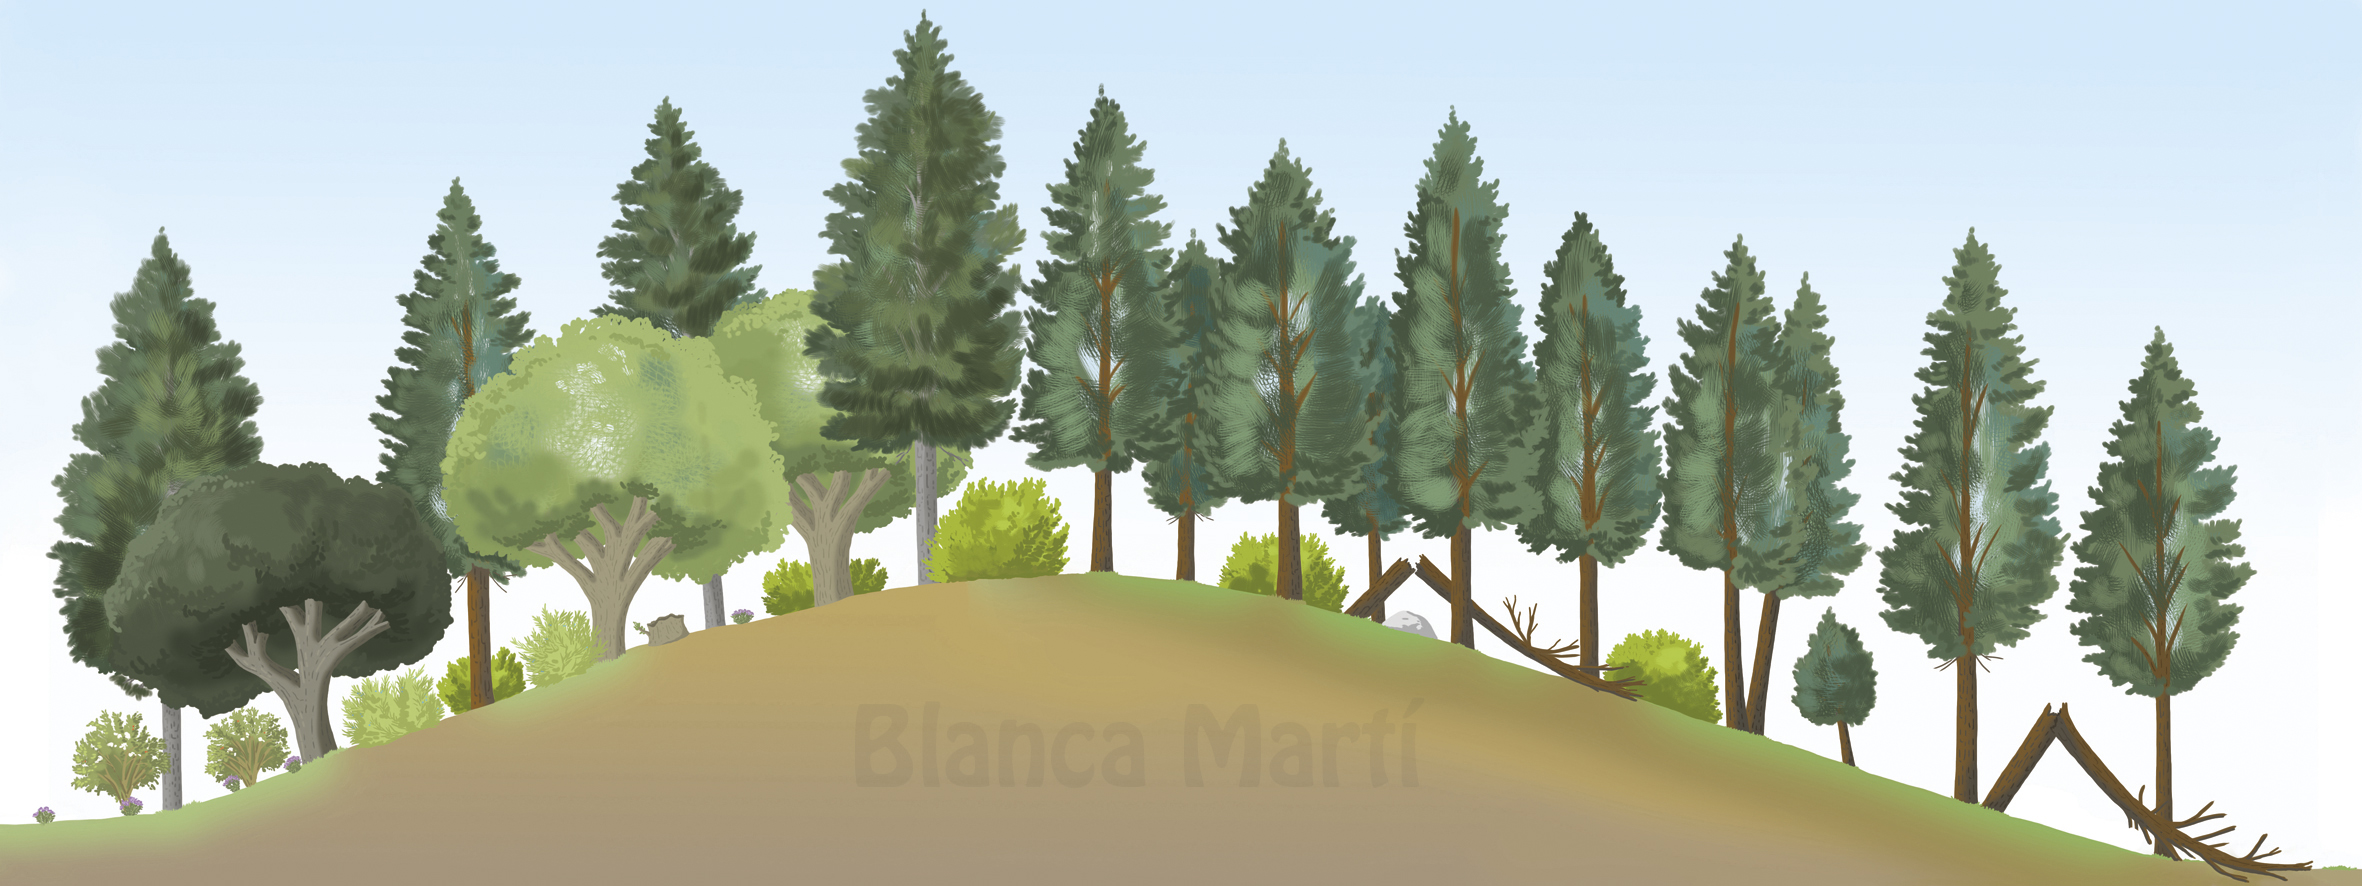 Schematic outline of a forest